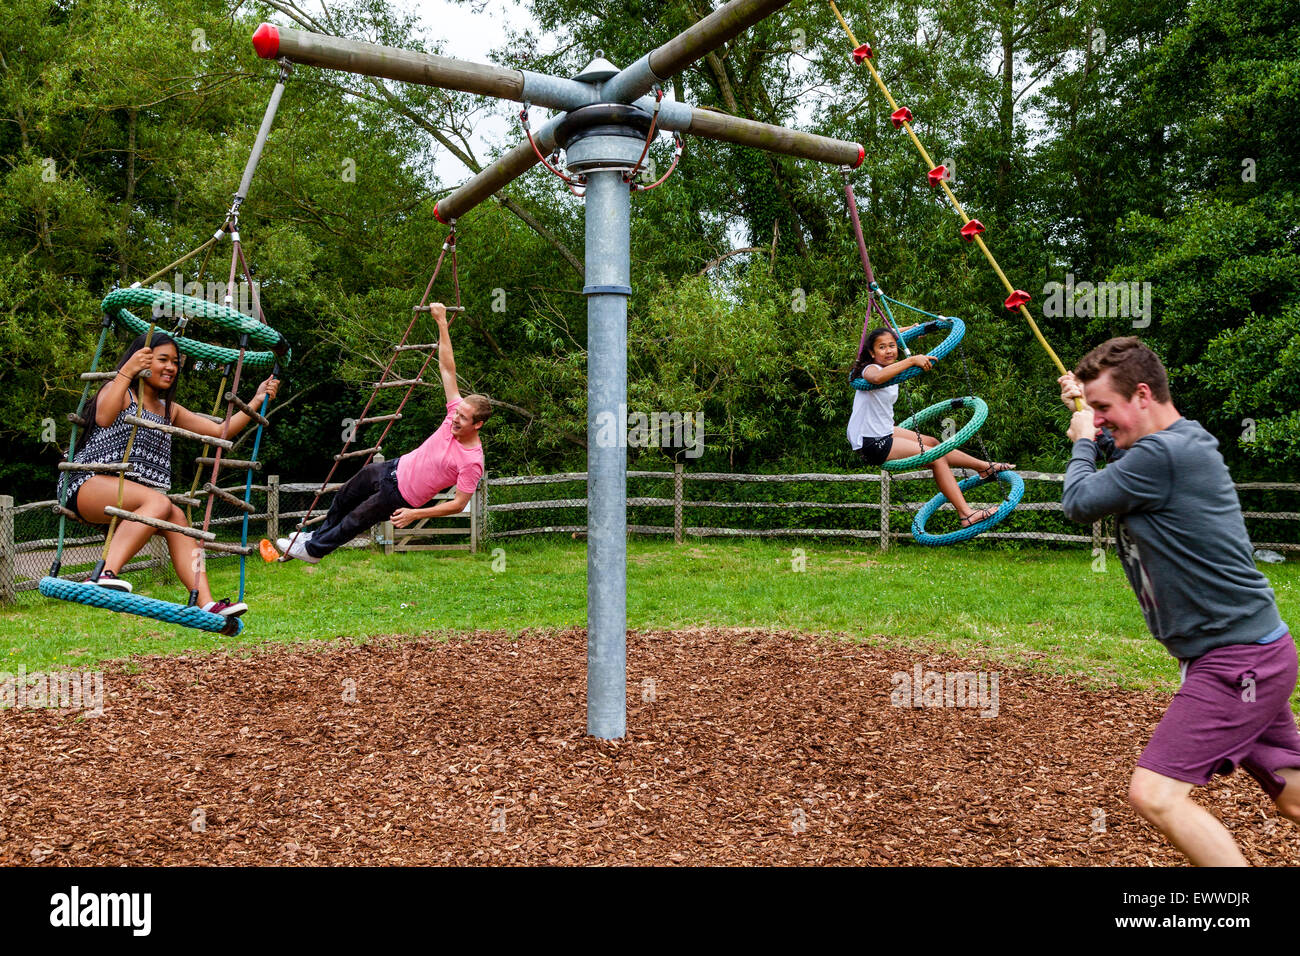 A Family Playing On The Swings, Play Area, Sussex, UK - Stock Image